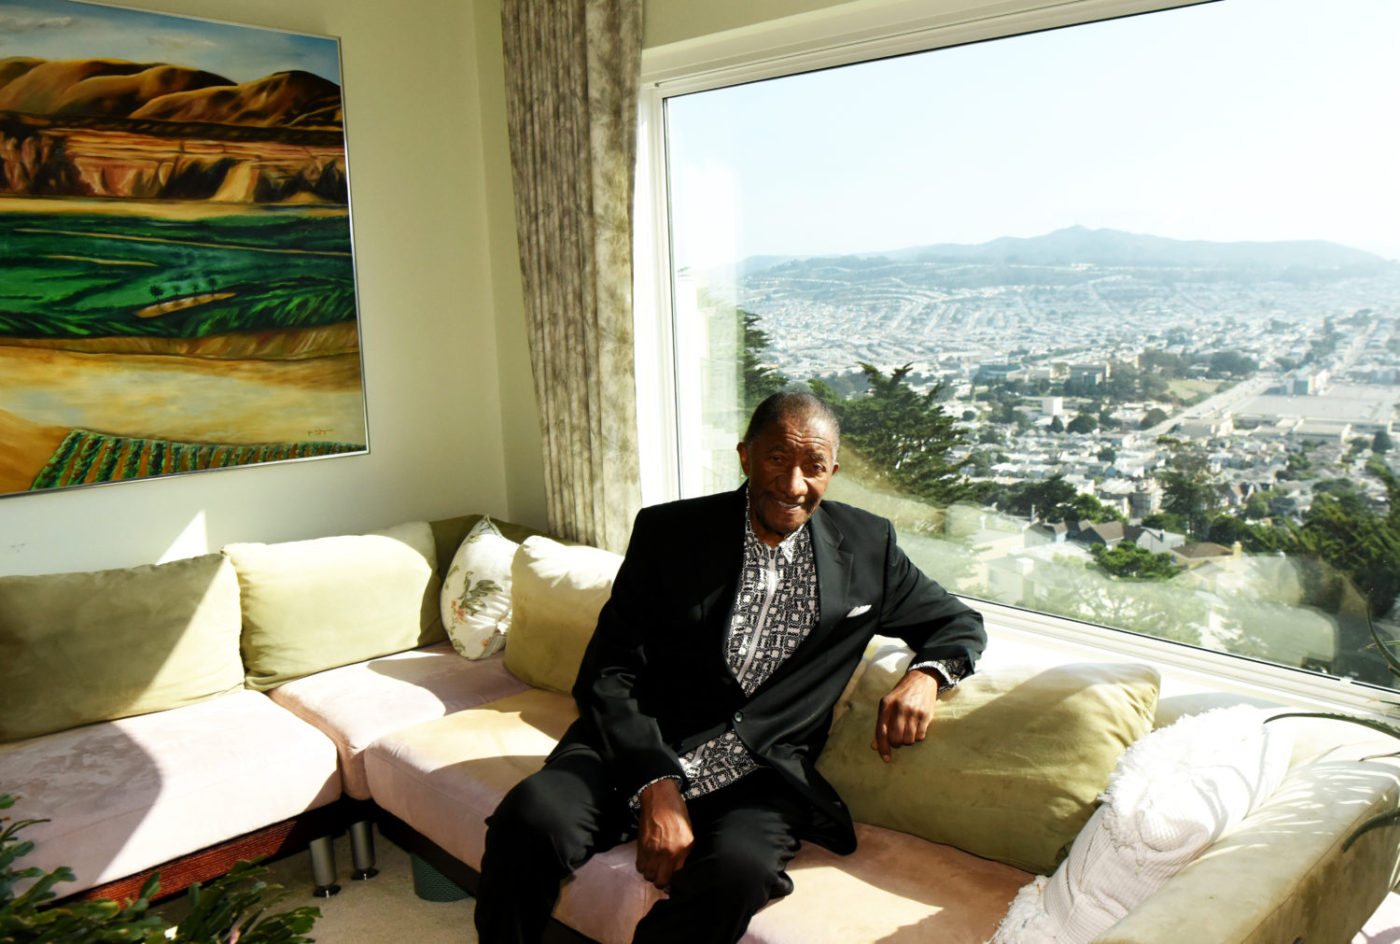 Fred-Jordan-in-his-living-room-by-Johnnie-Burrell-3-1400x944, Don't just survive, but thrive: The legacy of Fred Jordan, Local News & Views